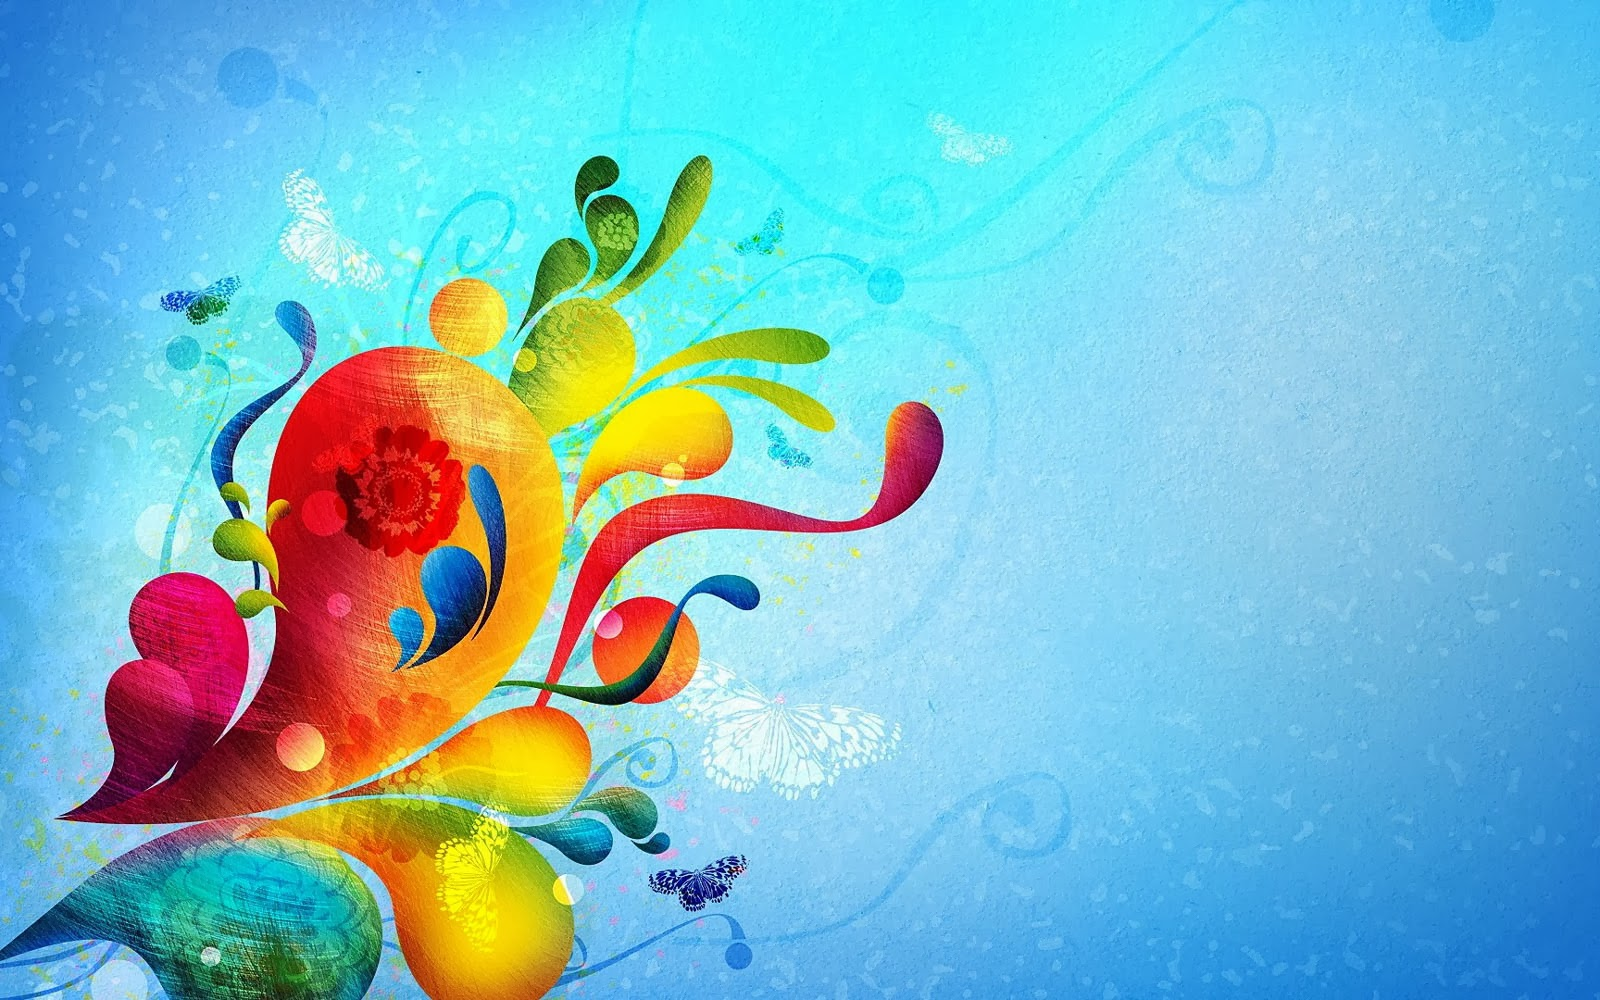 Wings Of Summer Original >> wallpapers: Colorful Swirls Wallpapers